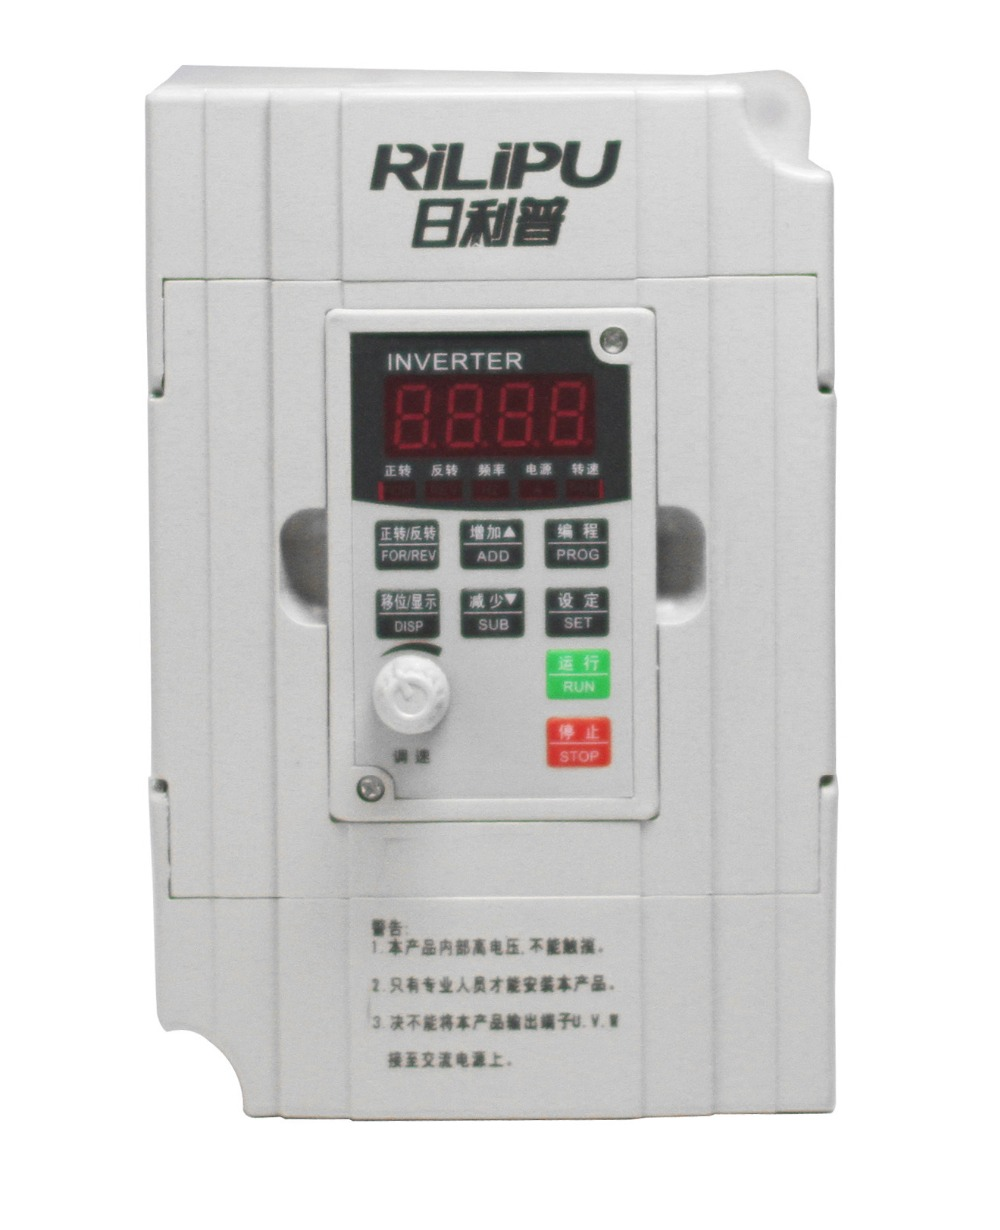 0.4kw 400W New VFD Inverter General Frequency Inverter 380v  Single phase 380V input Three phase output 2 2kw single phase input to 380v output three phase inverter vfd driver good in condition for industry use module vector